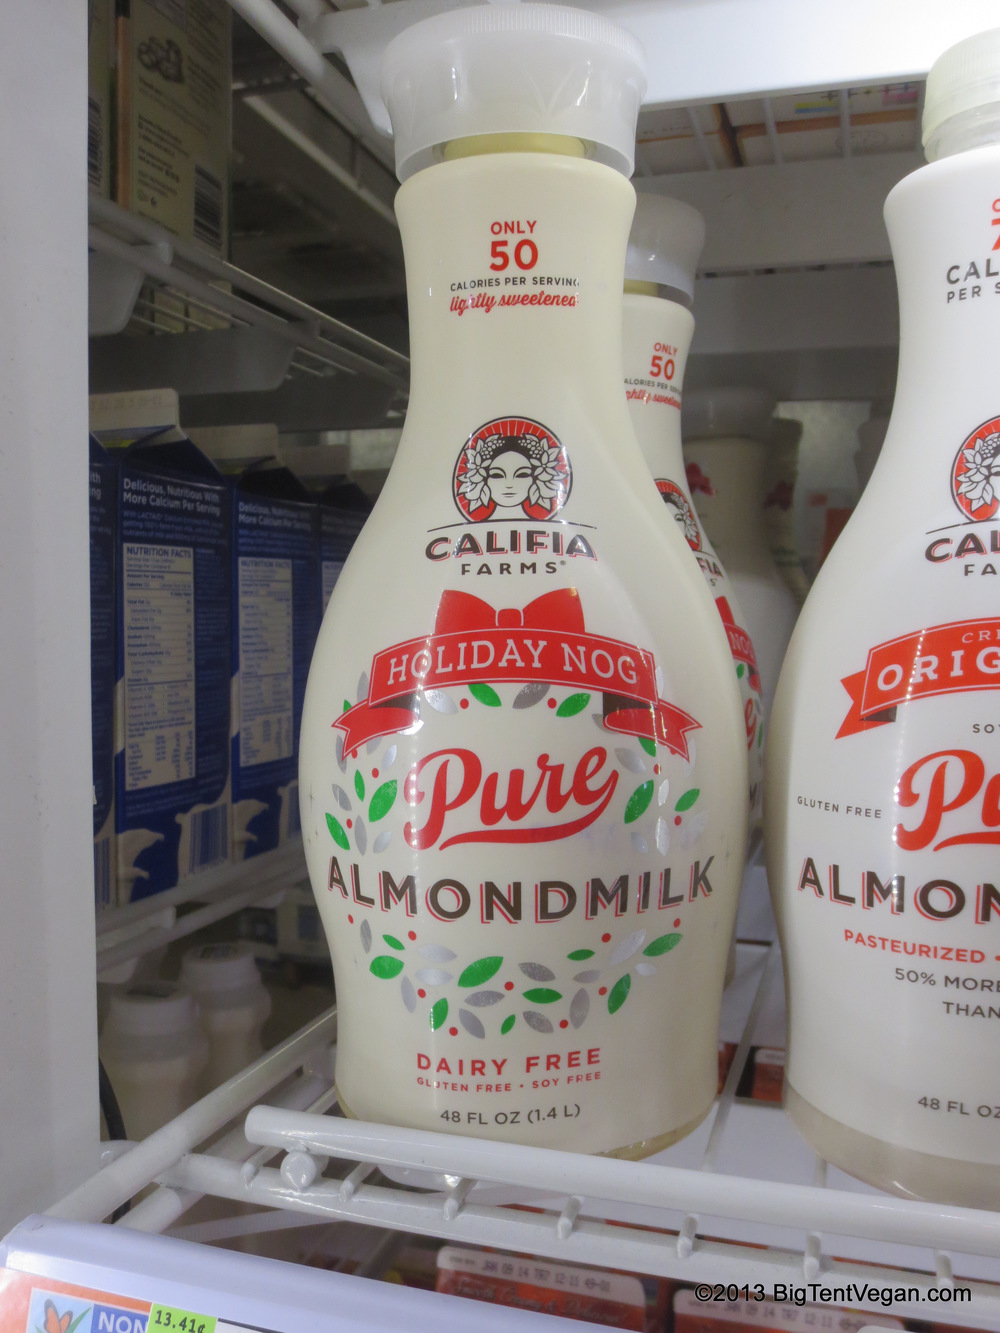 Califia Farms Almond Milk Nog (regular price $4.29 per 48 oz. jug as of Nov 2013 in Orange County, CA)